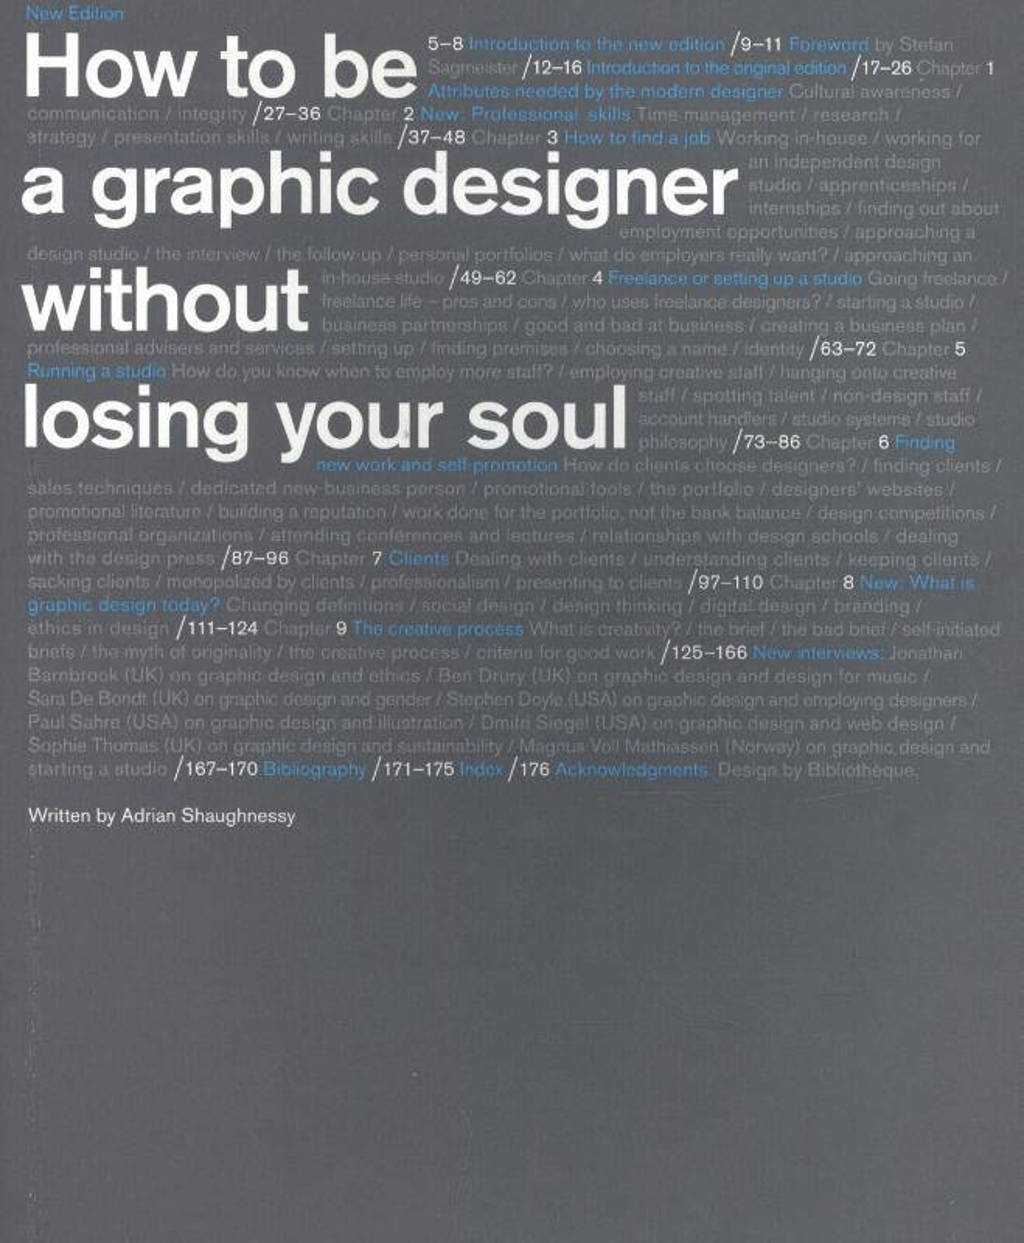 How to be a Graphic Designer...2nd edition - Shaughnessy, Adrian